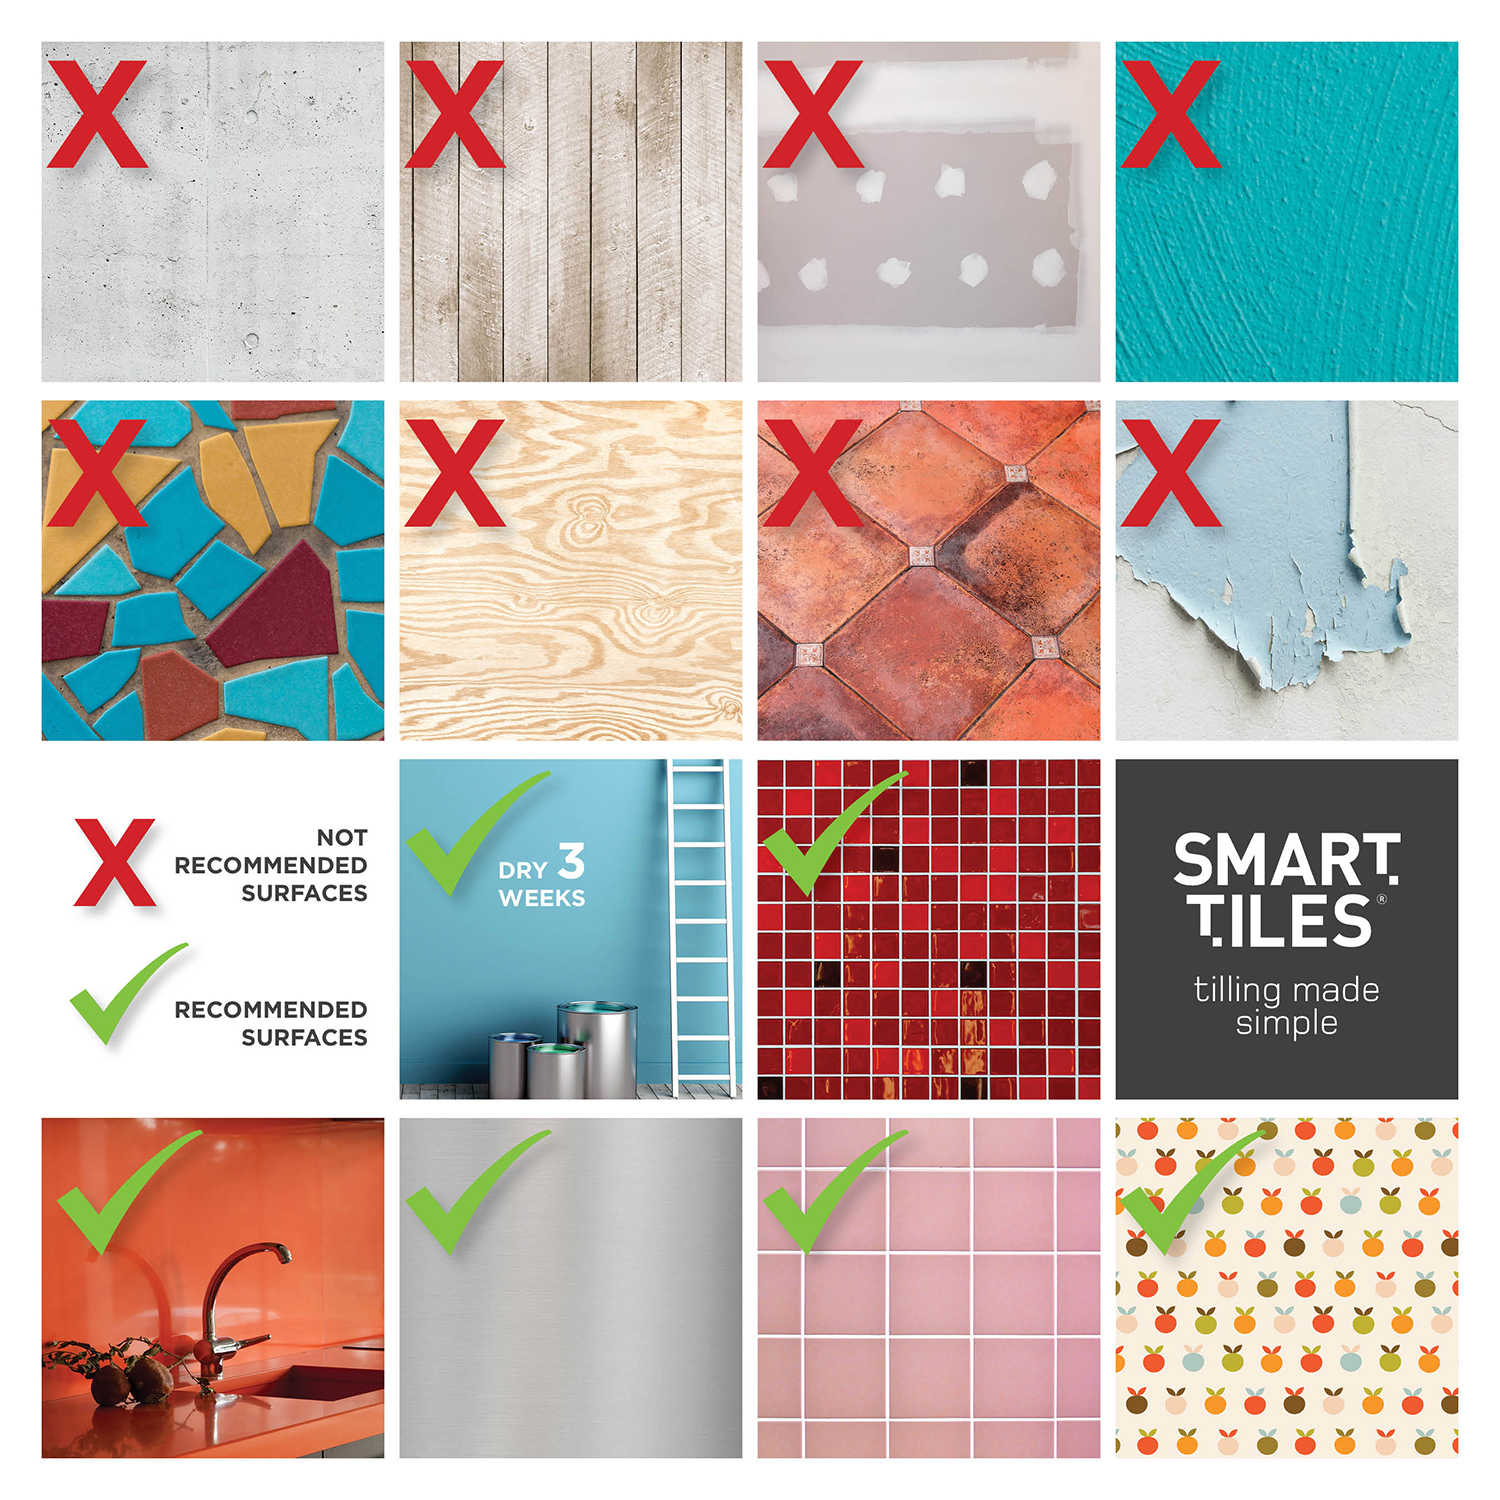 Smart Tiles 11.56 in x 8.38 in Peel and Stick Self-Adhesive Mosaic Backsplash Wall Tile - Metro Gallino (each)